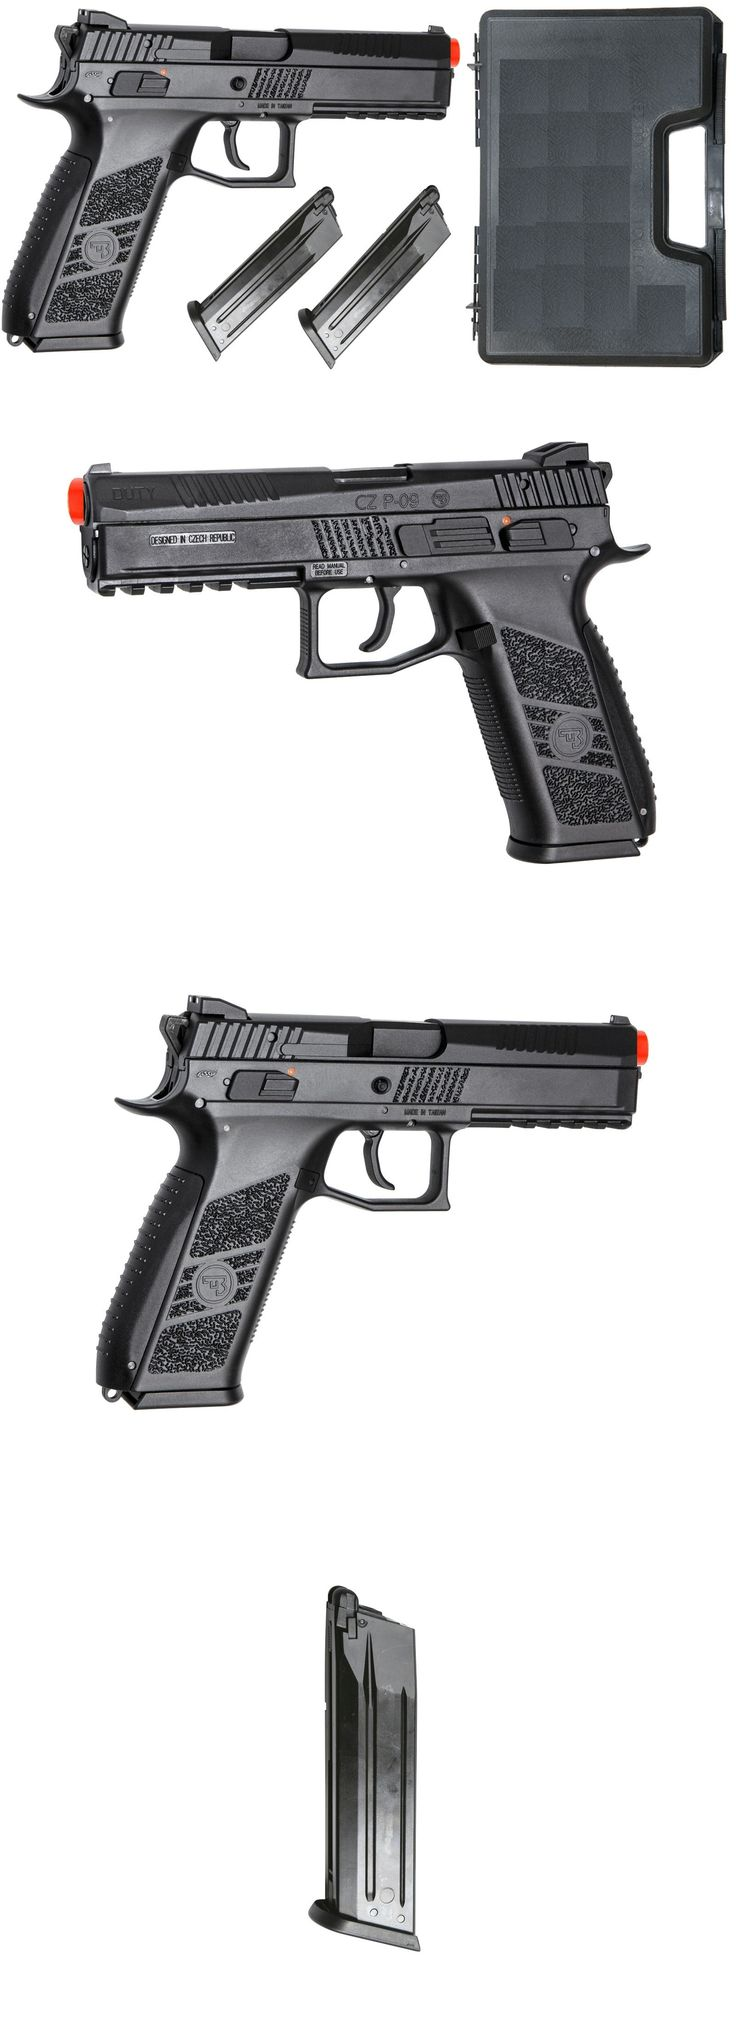 Pistol 160921: Asg Cz P-09 Tactical Airsoft Pistol Blowback W 2 Green Gas Mags And Gun Case -> BUY IT NOW ONLY: $151.95 on eBay!